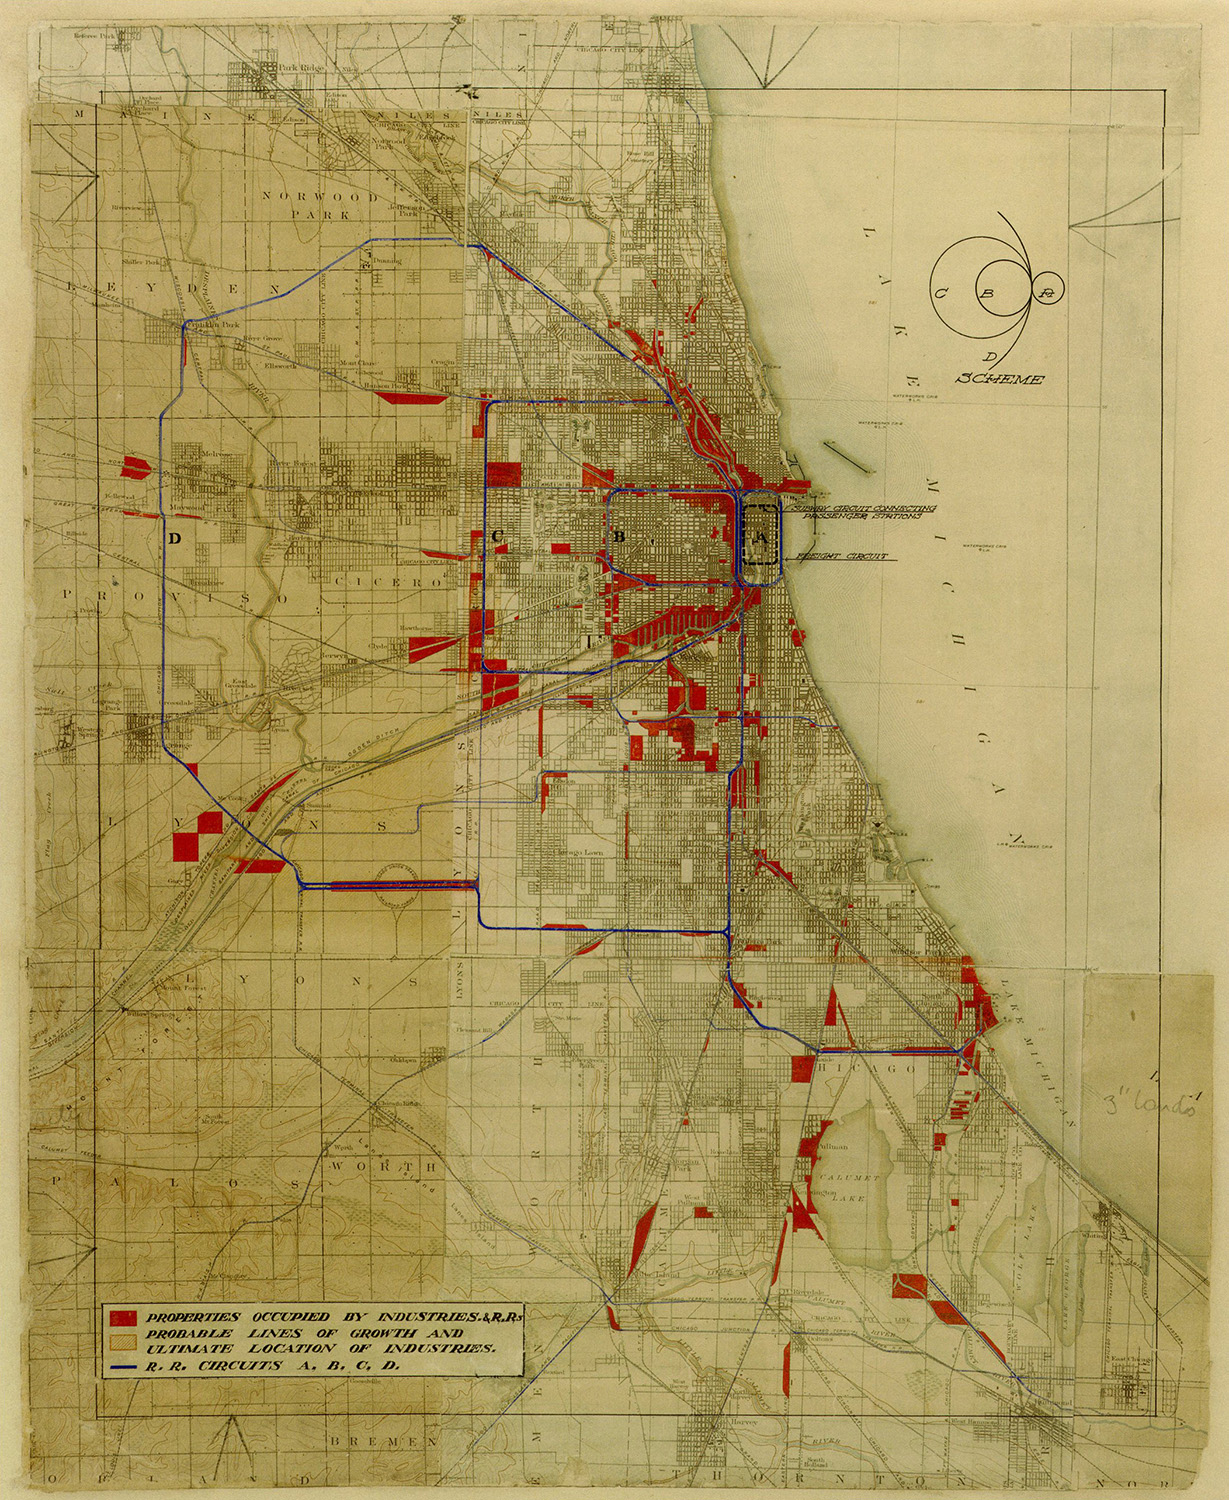 LXXIII: Diagram of existing 1909 industrial areas and commuter and industrial rail circuits